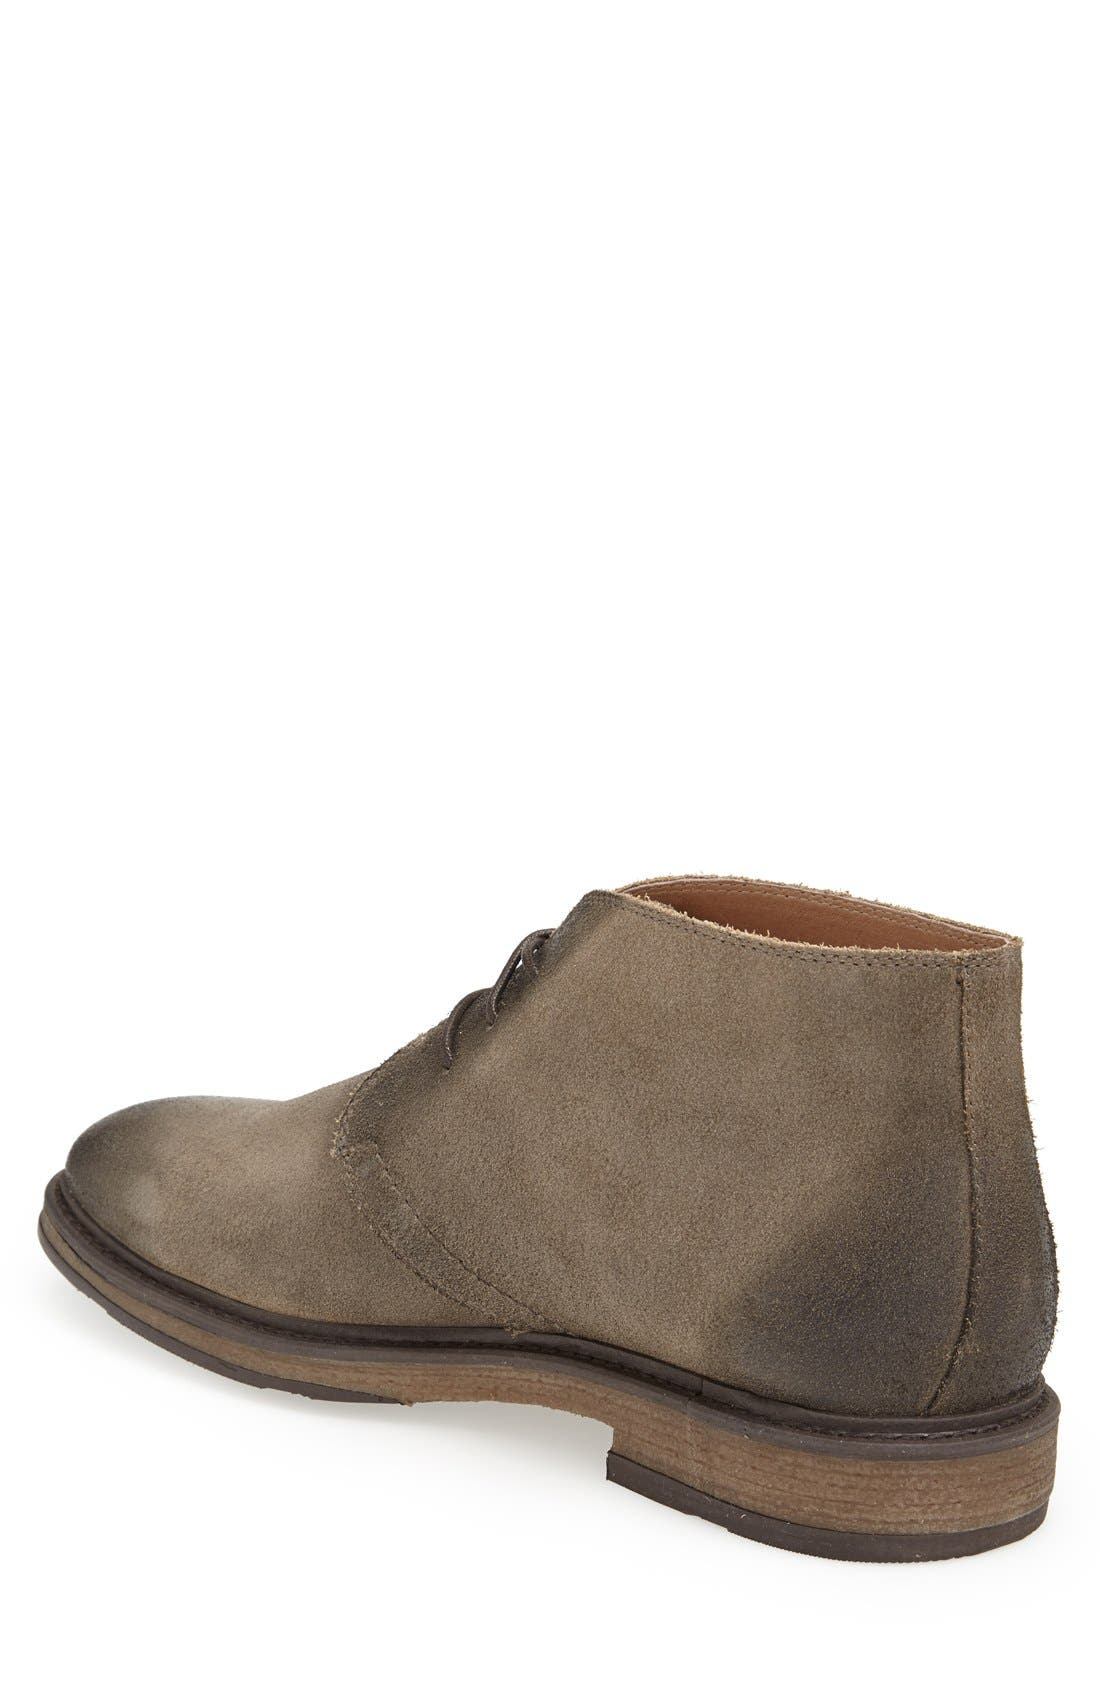 'Canyon' Chukka Boot,                             Alternate thumbnail 9, color,